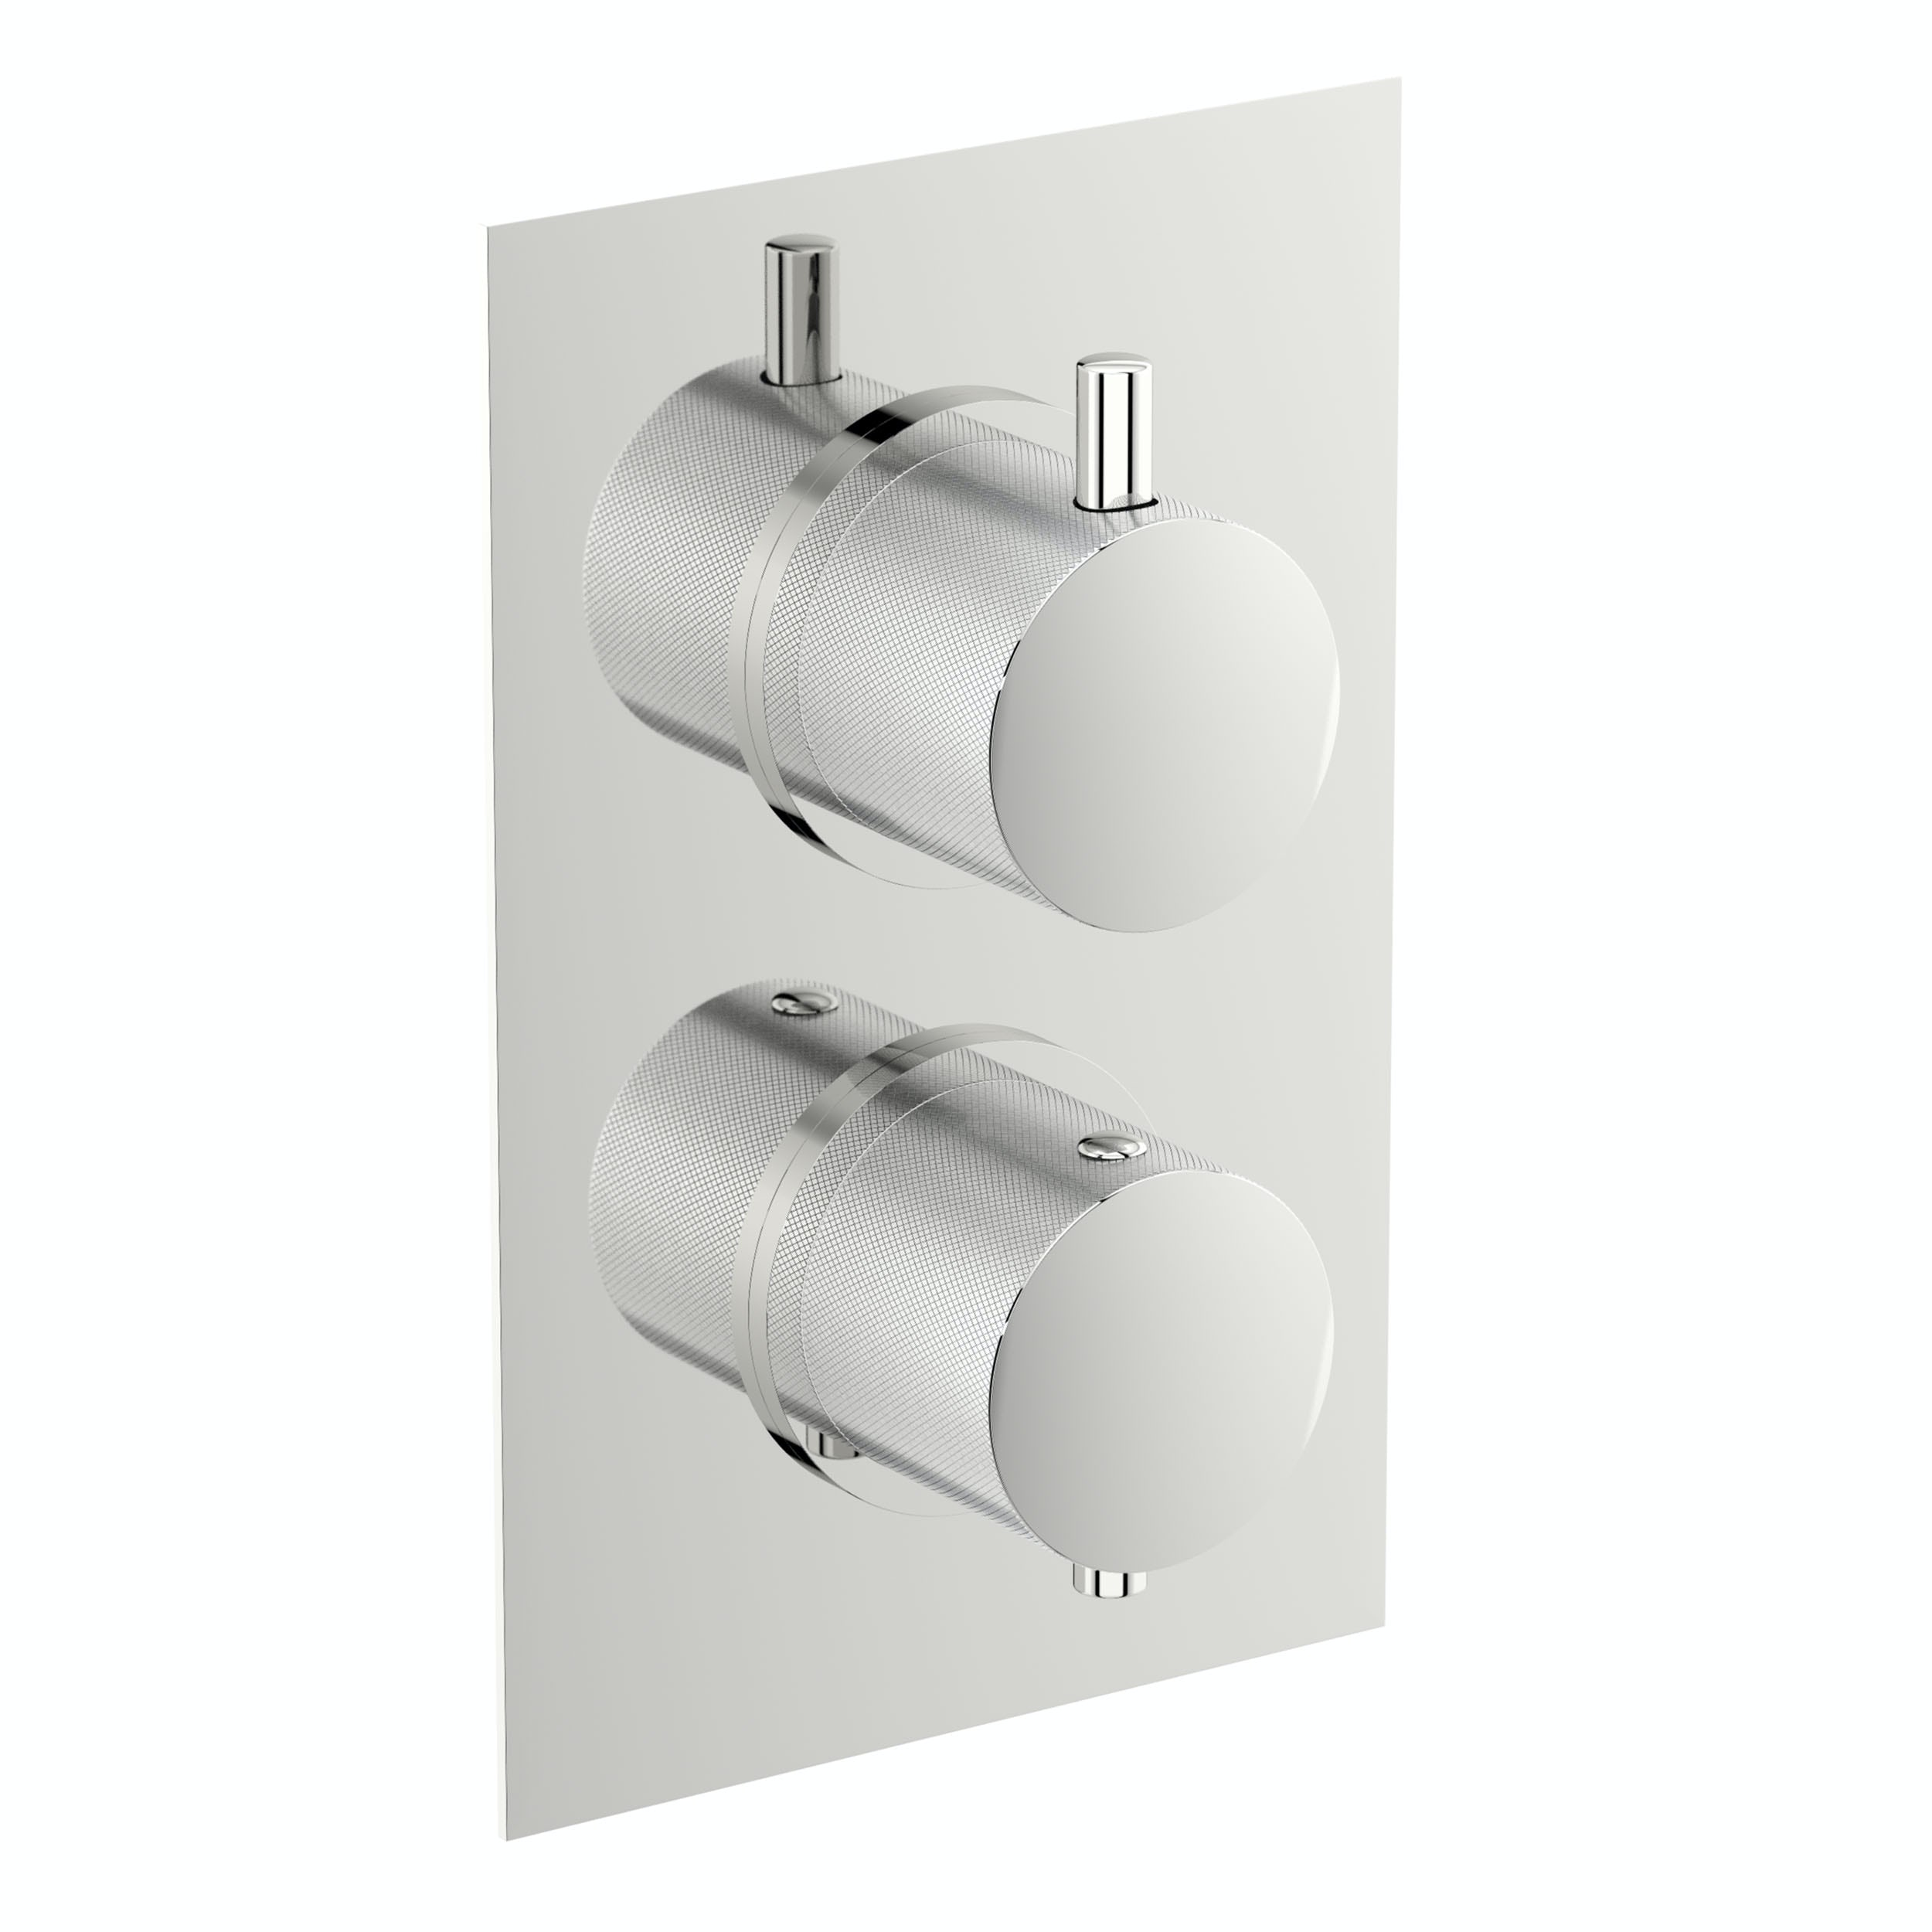 Mode Banks twin thermostatic shower valve with diverter